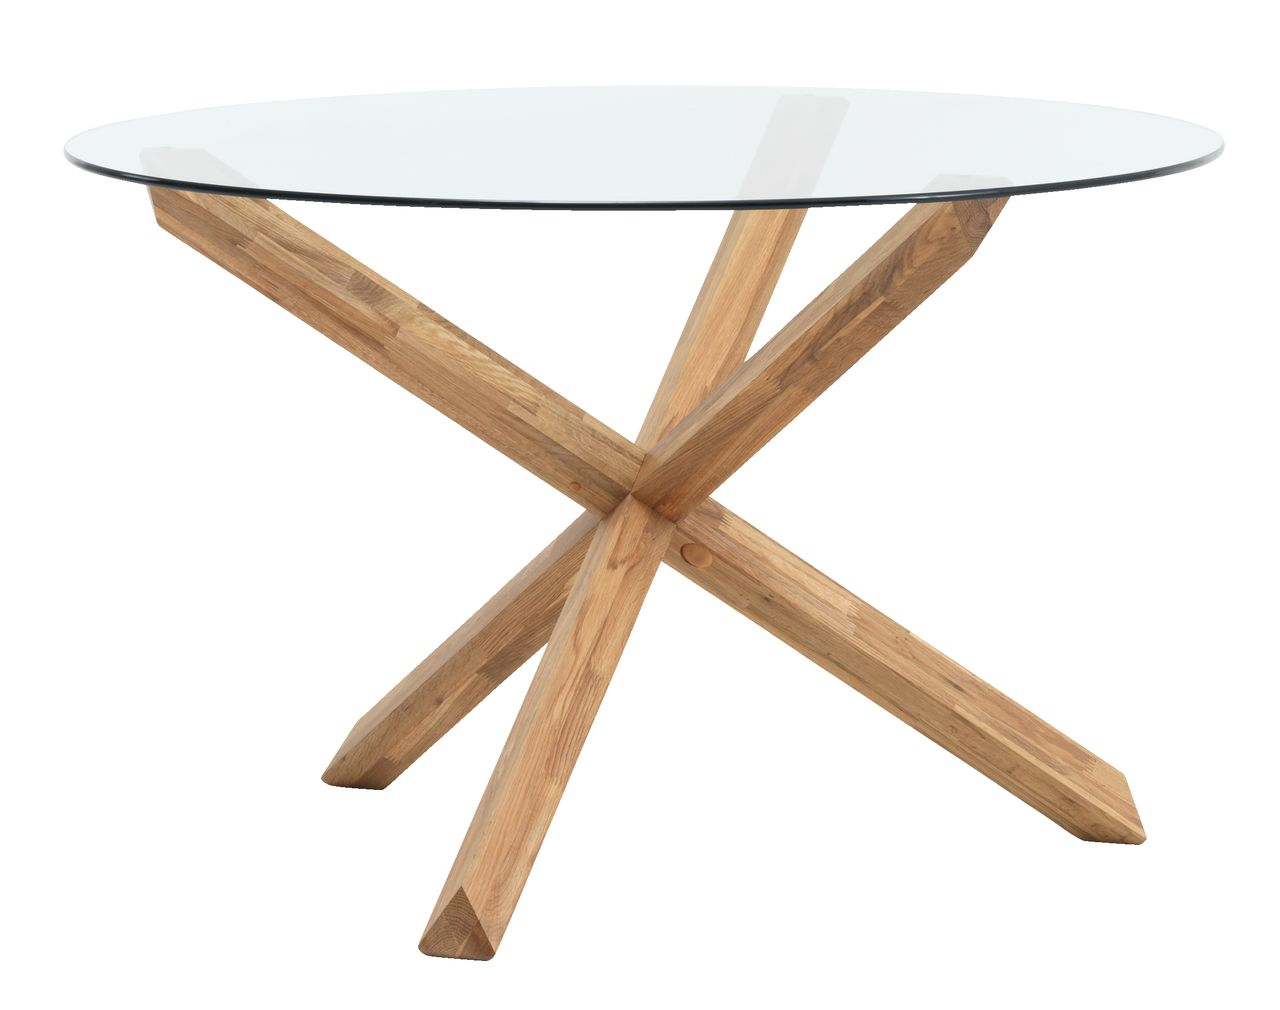 Dining table agerby d119 glass oak jysk for Table induction 90 cm